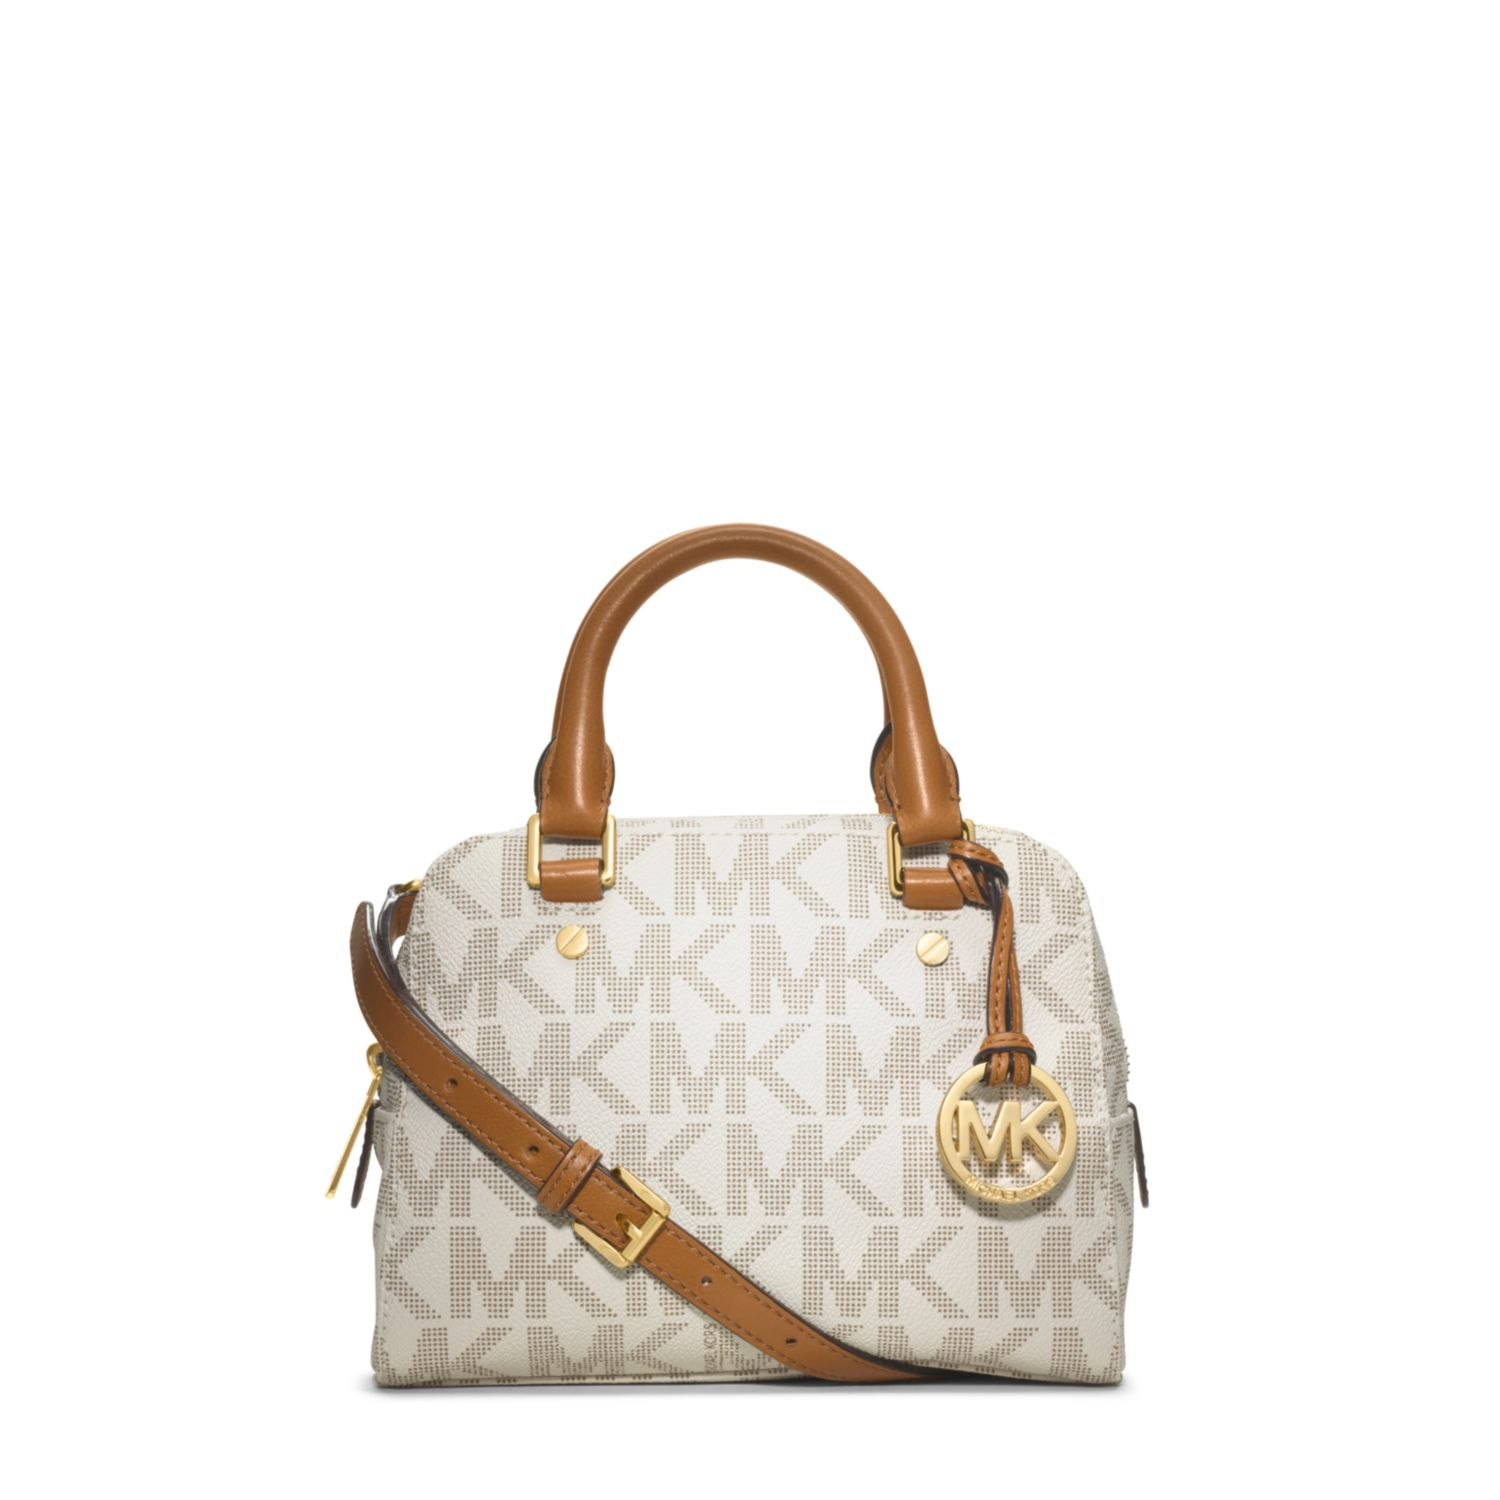 058fbce6ee540 Lyst - Michael Kors Jet Set Travel Logo Small Satchel in White